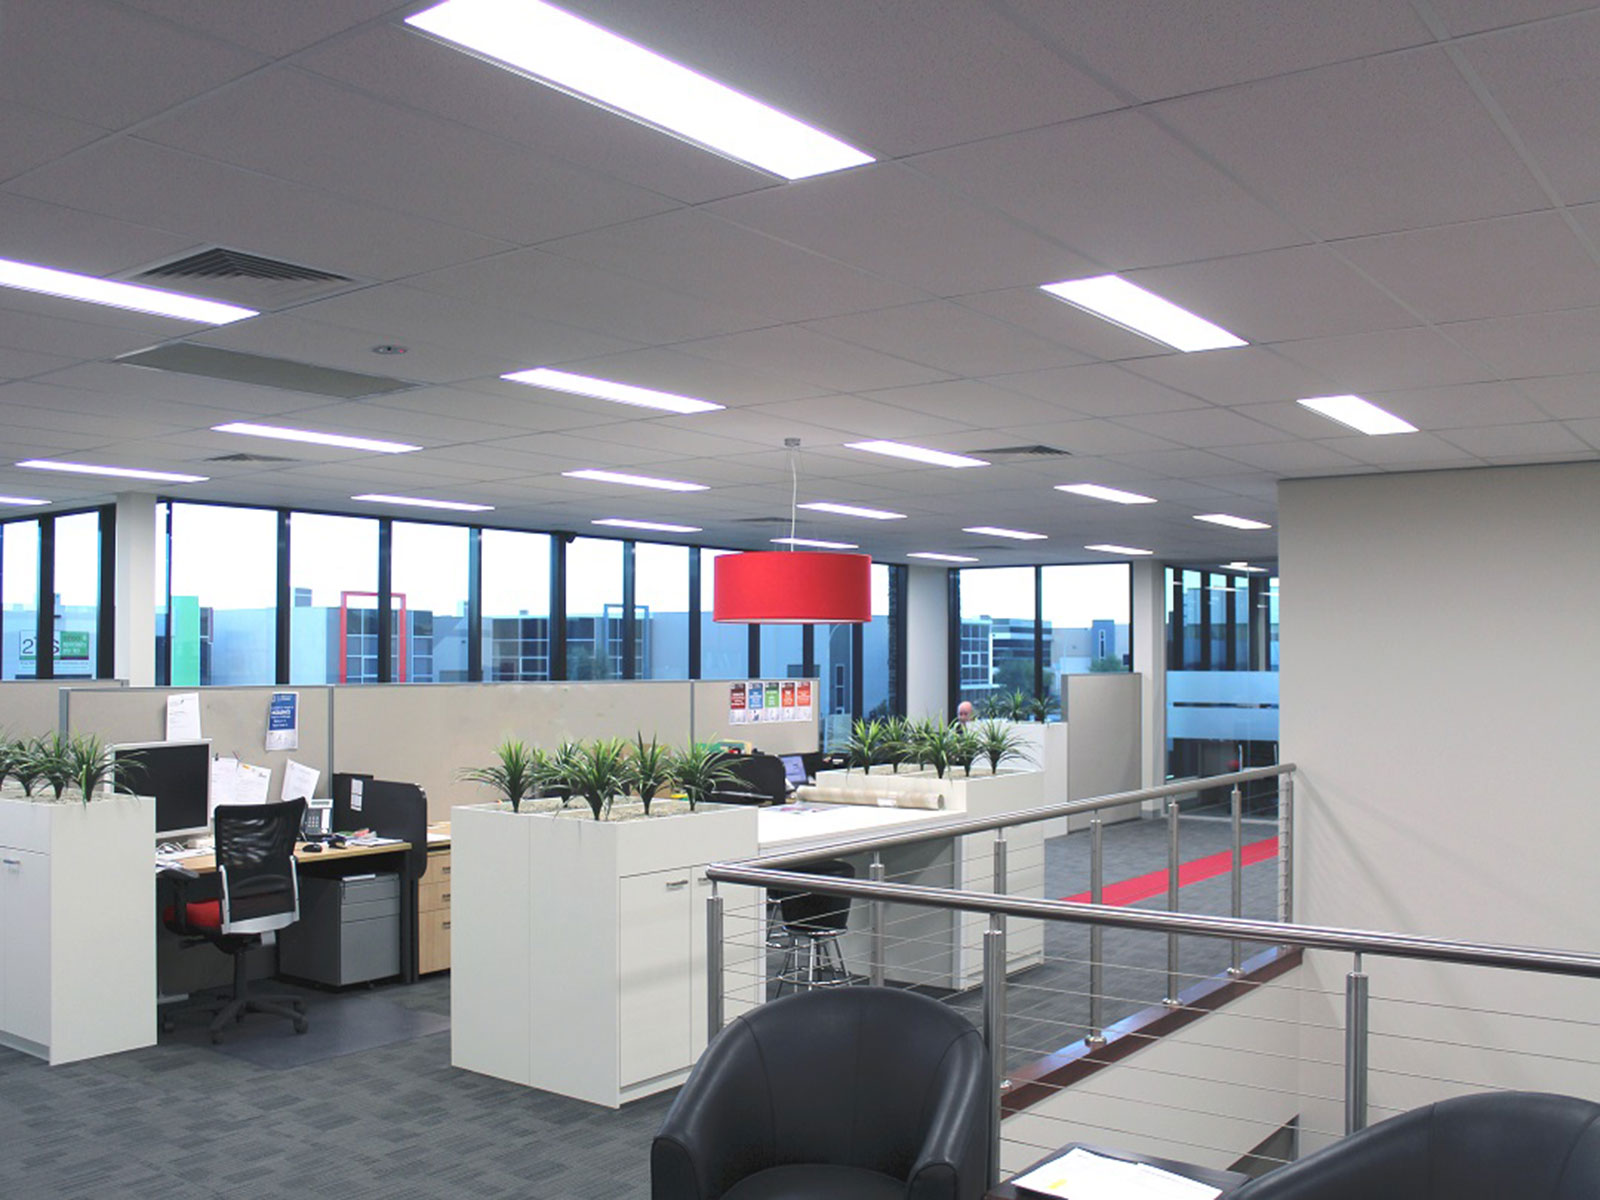 Office Room Lighting In AU